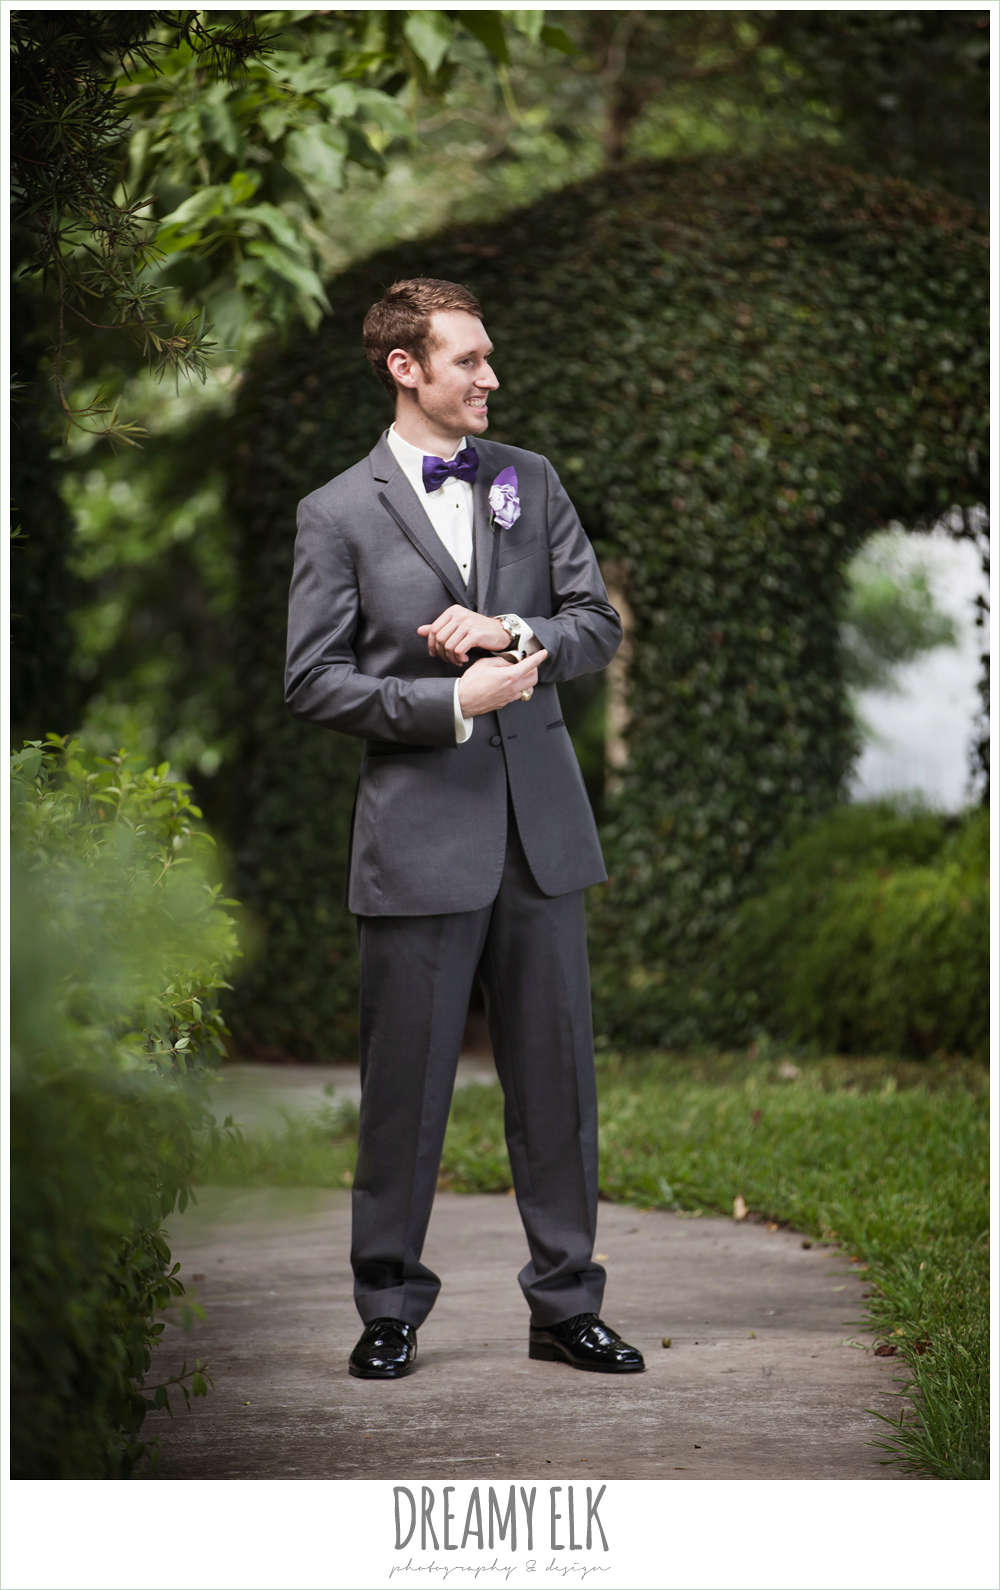 outdoor groom's photo, gray suit, purple bow tie, heather's glen summer wedding photo, houston, texas {dreamy elk photography and design}